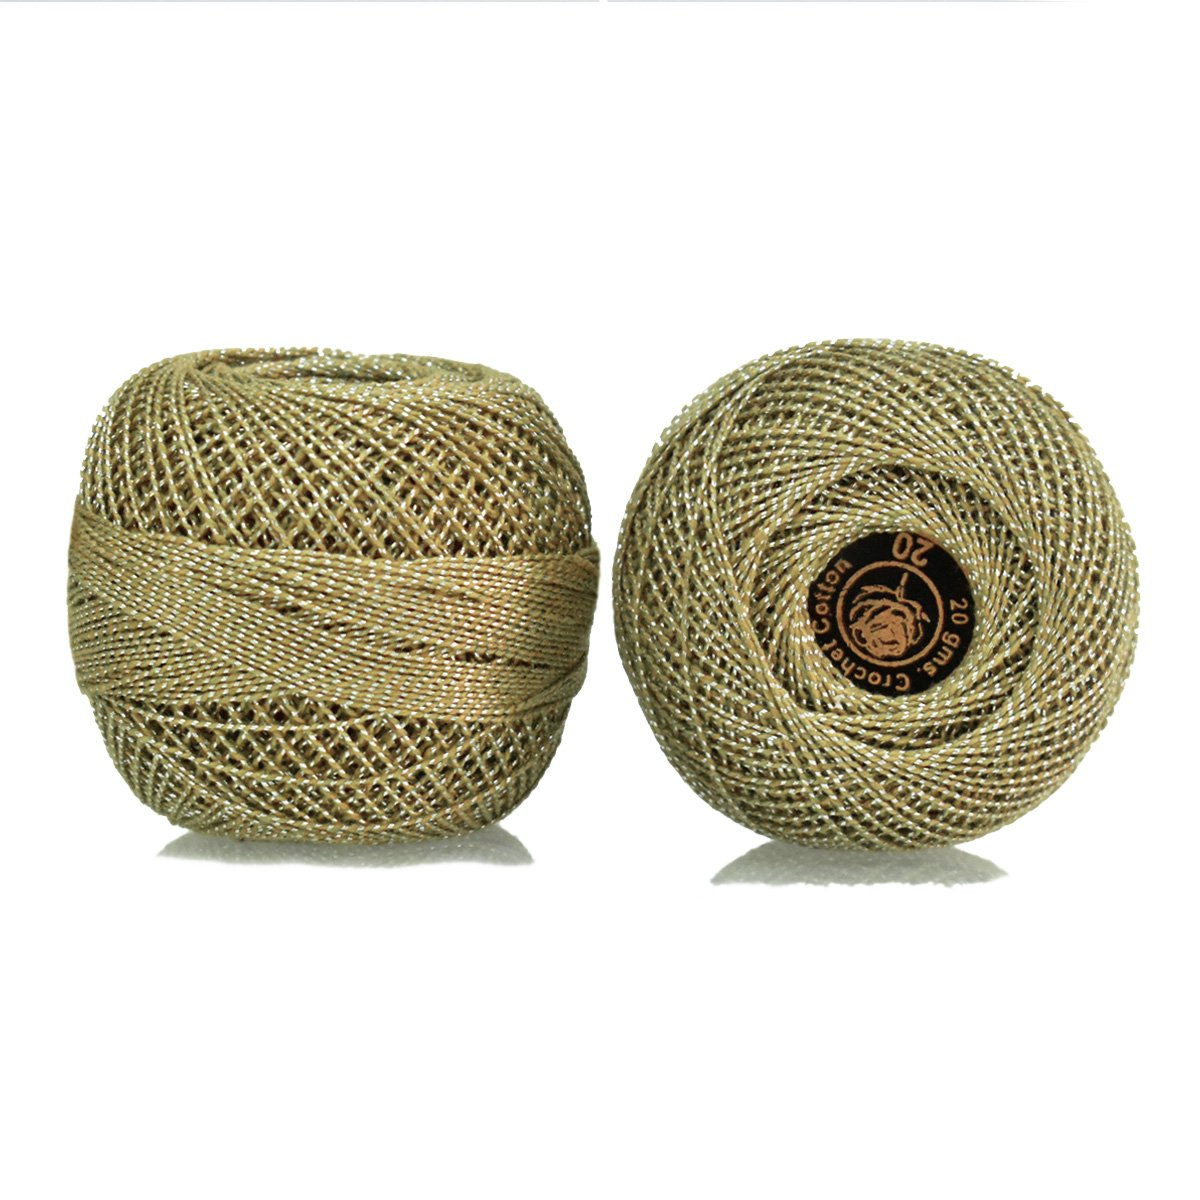 Crochet Cotton Thread with Metallic Yarn size 20 for weaving, knitting and craft, 1 Ball, 200 Yard of 100% cotton threads per roll, Factory made thread consistent in color and quality(Black) embroiderymaterial.com